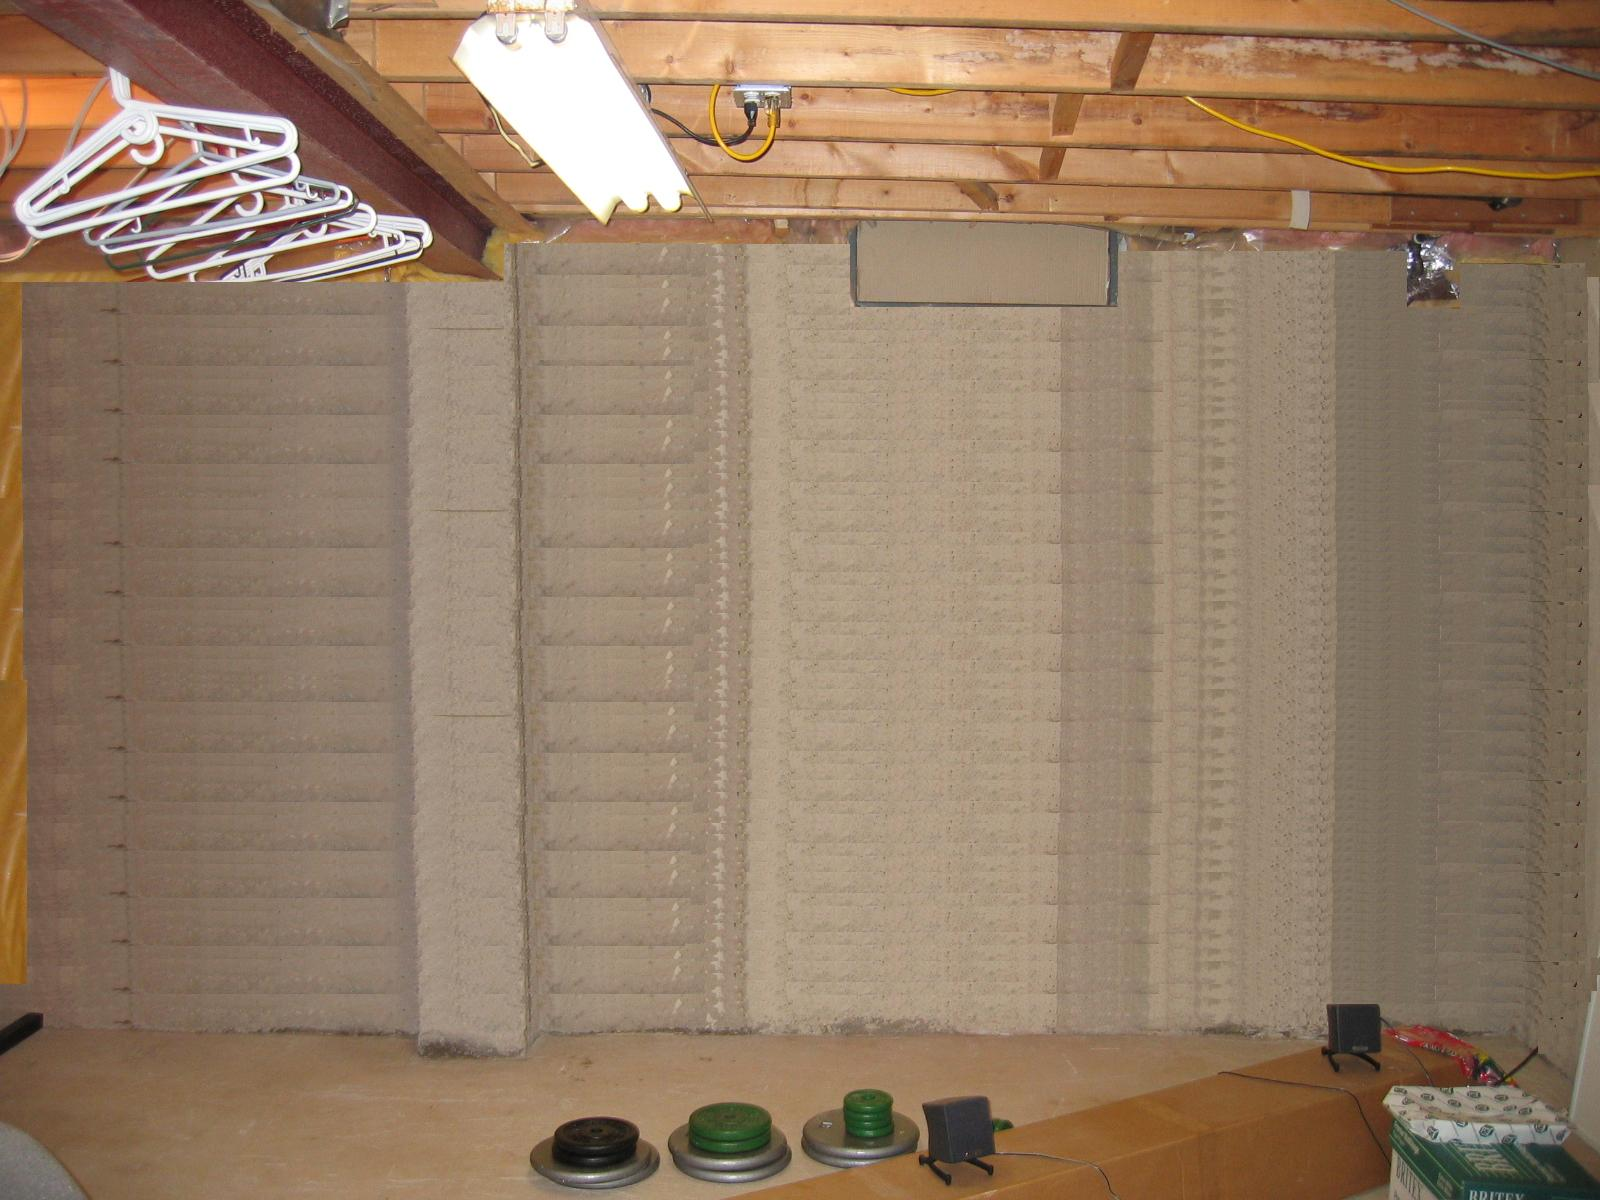 humidity in basement more than 60% Page 2 AVS Forum Home Theater  #A36628